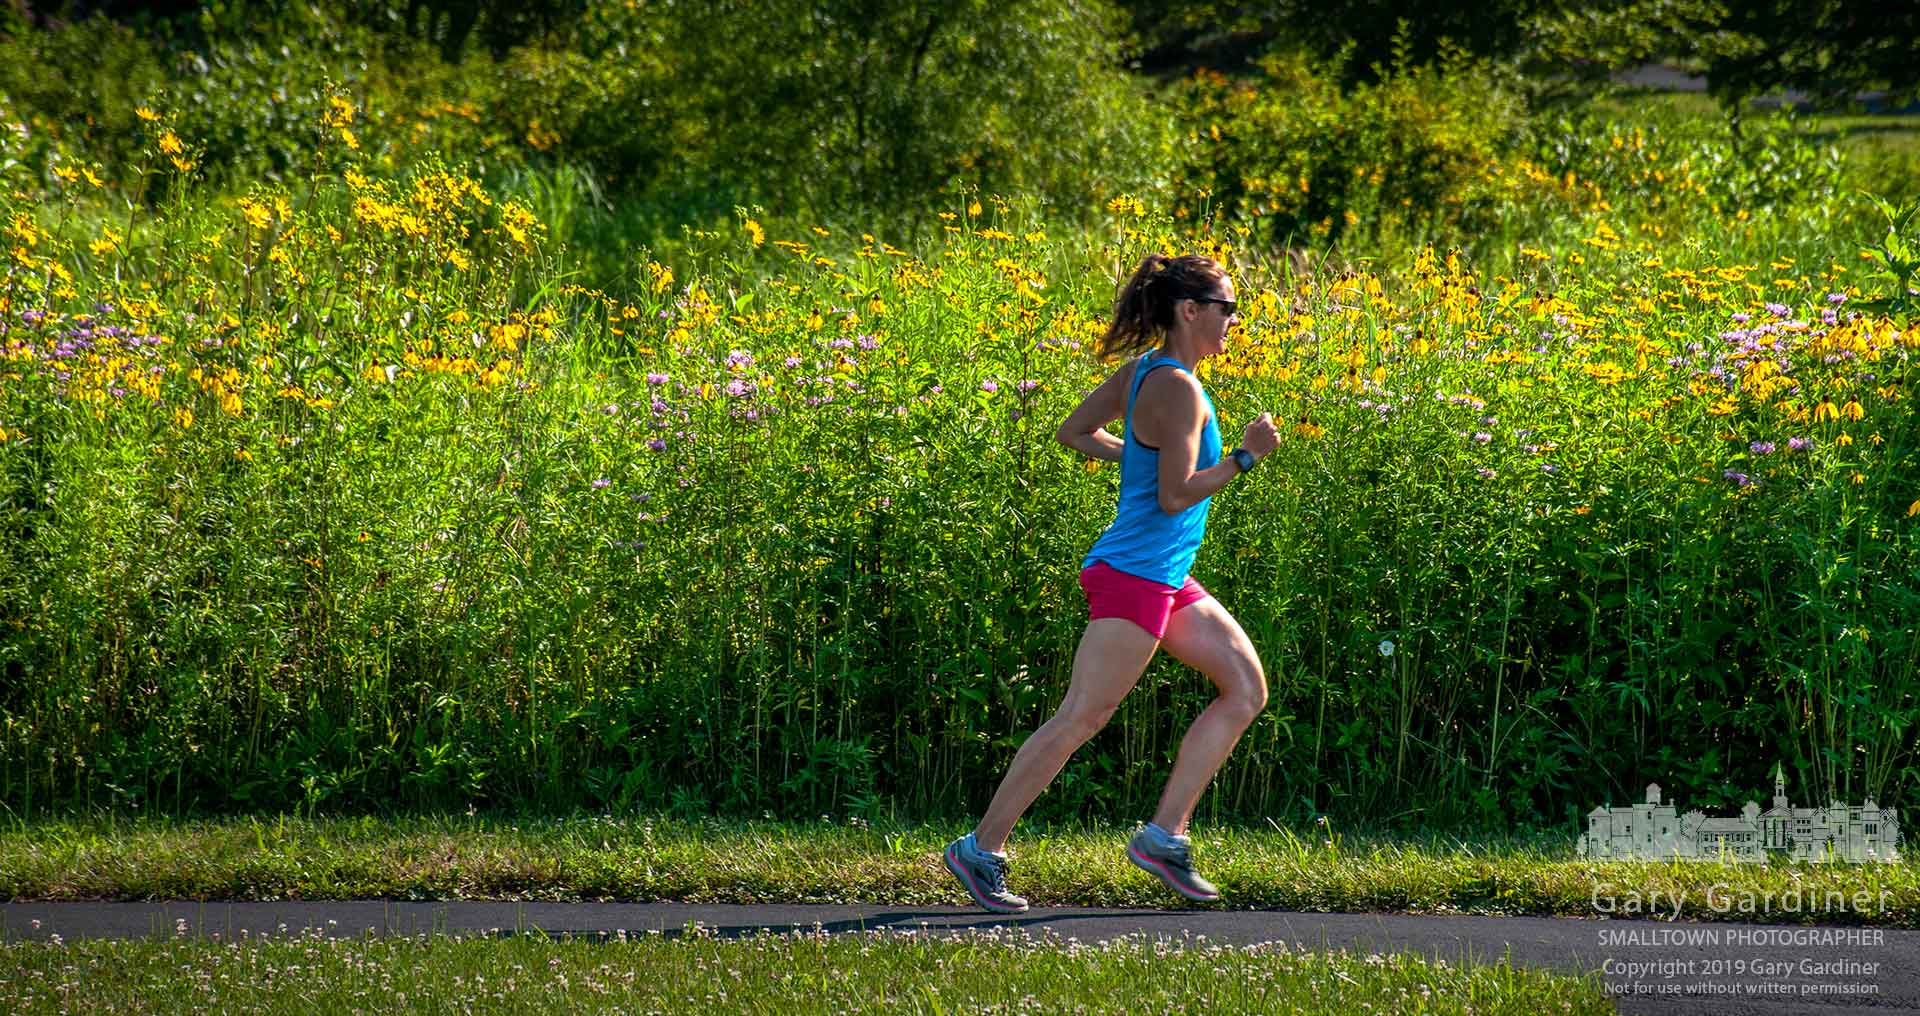 A runner strides past a colorful wall of flowers growing along the path through a section of the wetlands at Highlands Aquatic Park. My Final Photo for Juy 9, 2019.